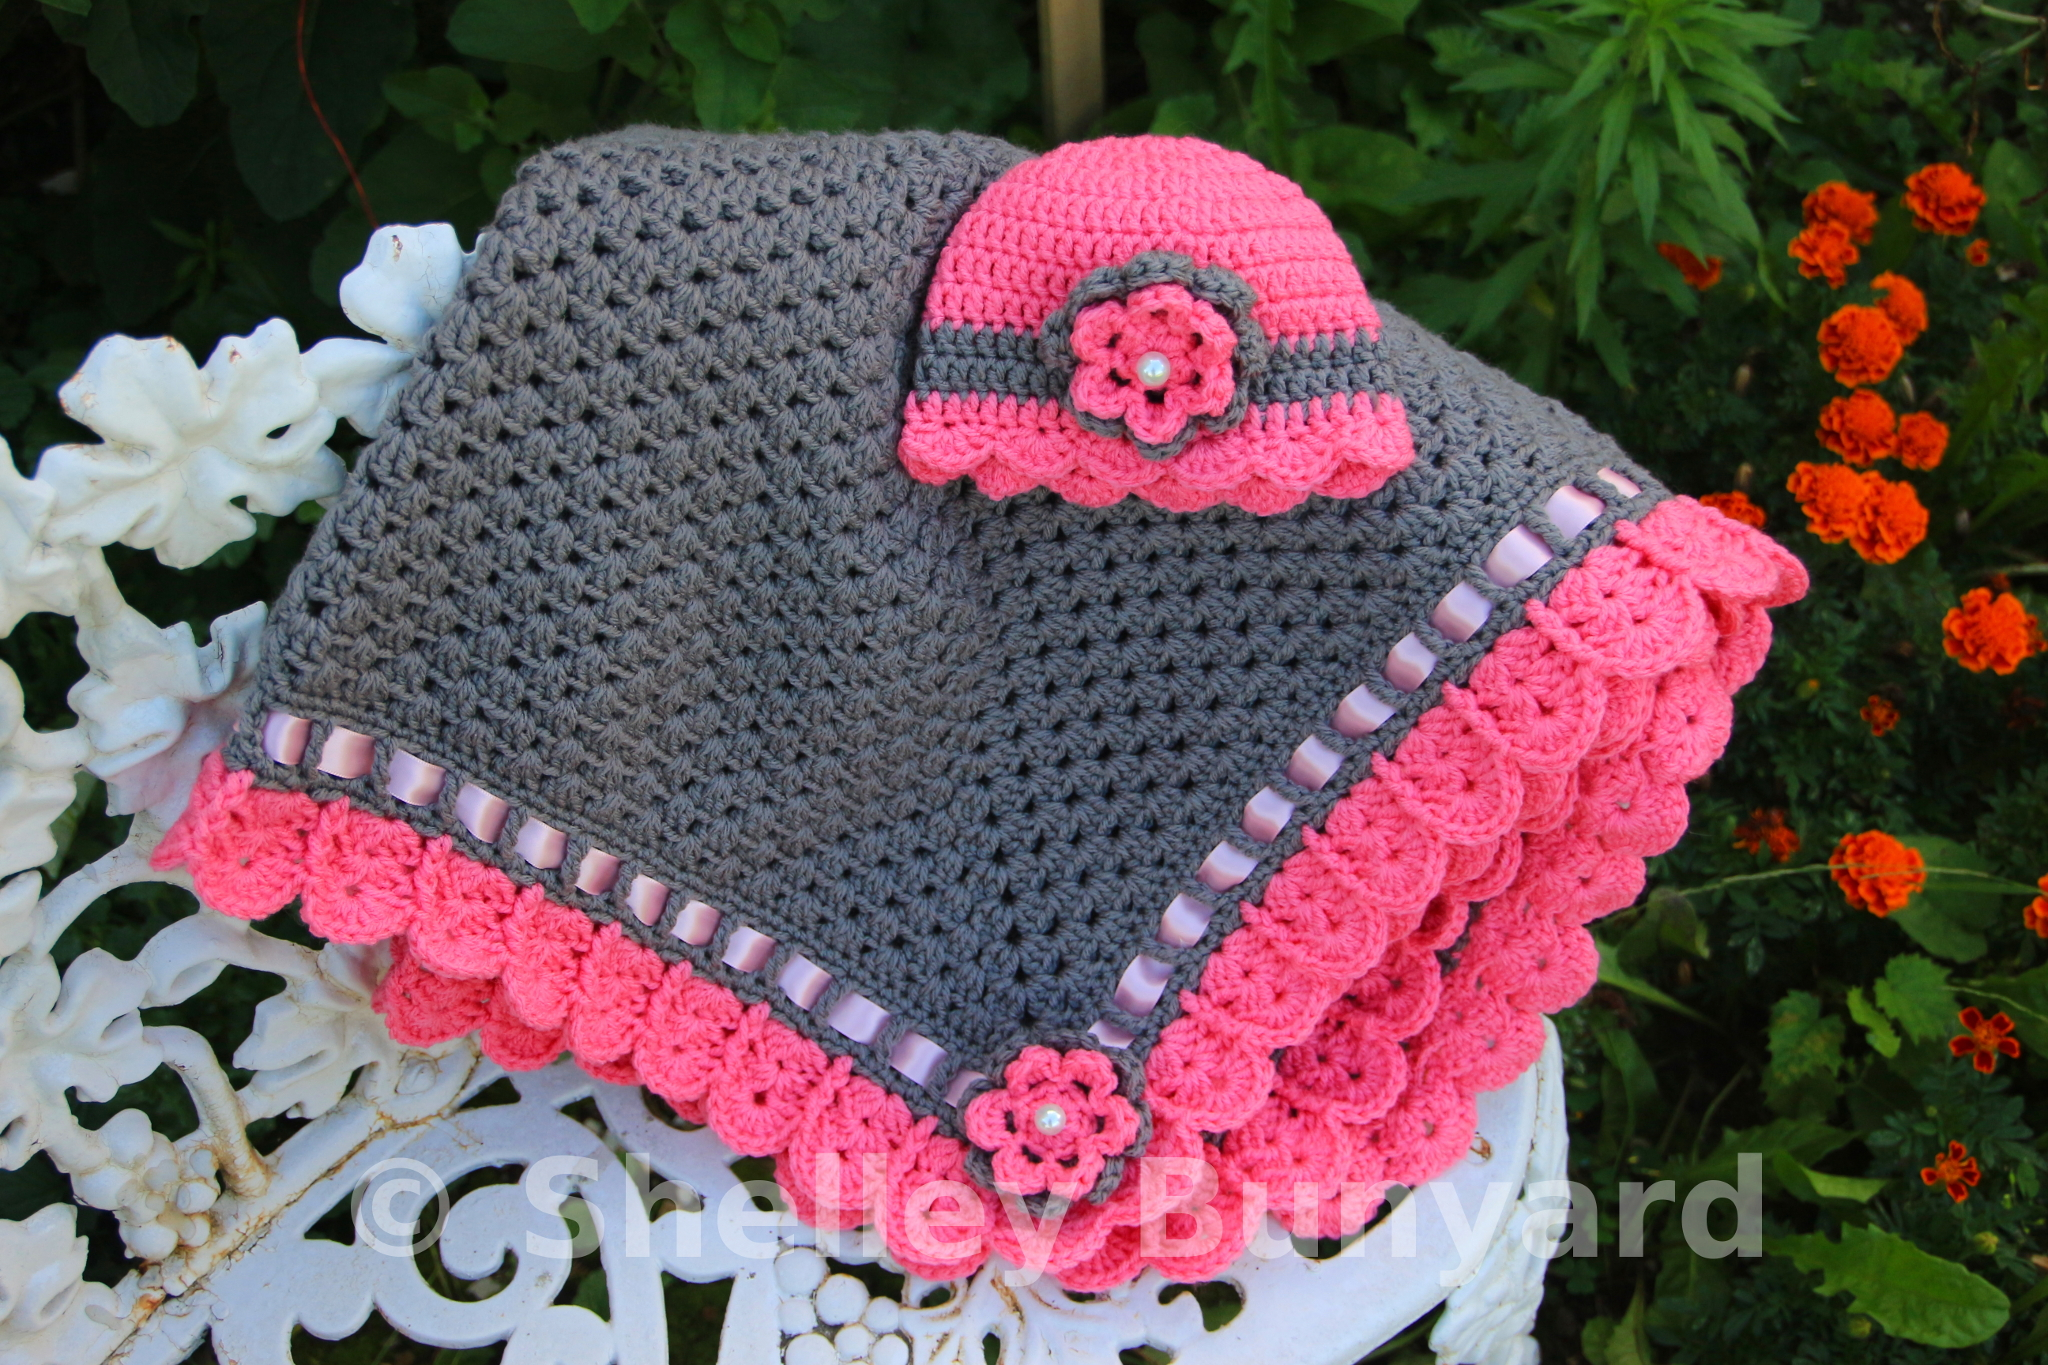 Crocheted Baby Blankets Granny Square And Ribbon Baby Blanket Set Mad Hooker Crochet